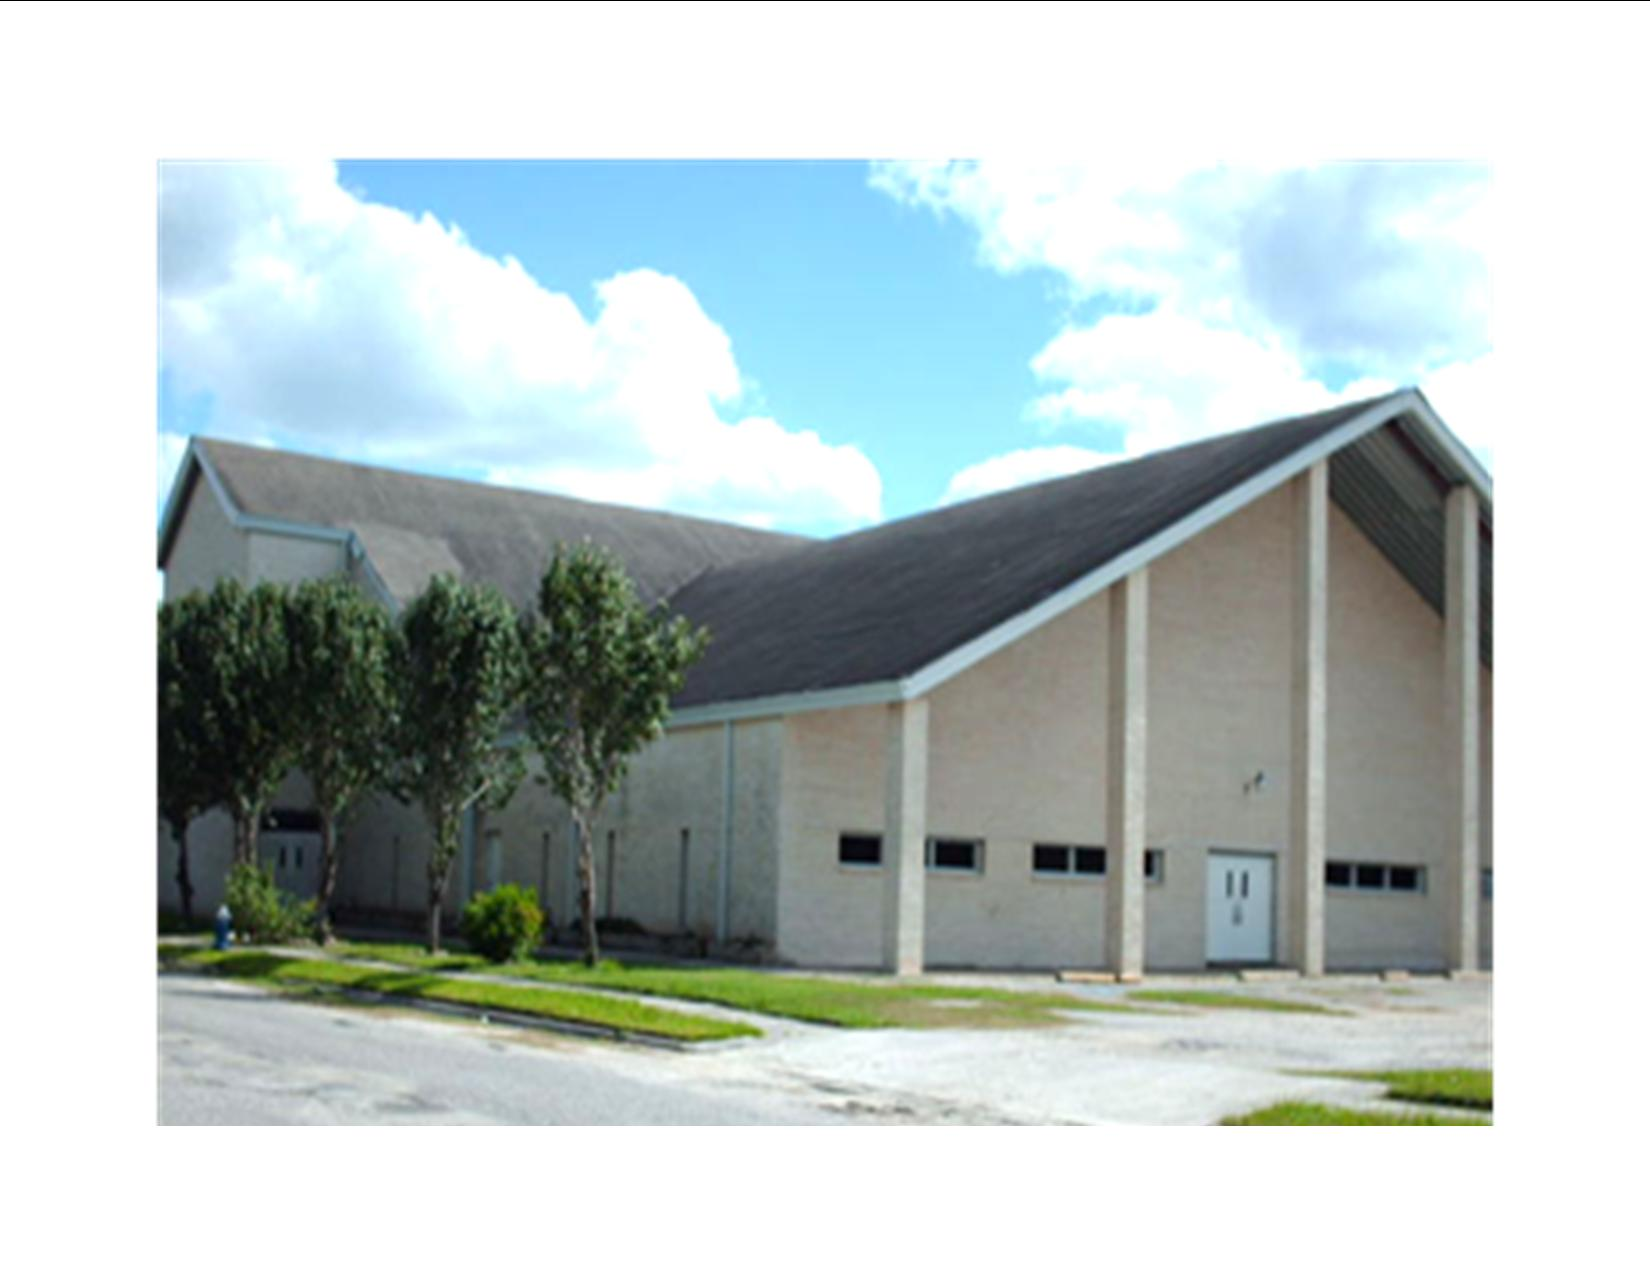 Gloryland MBC, 7440 Coffee Street , Houston, Texas, 77033, USA